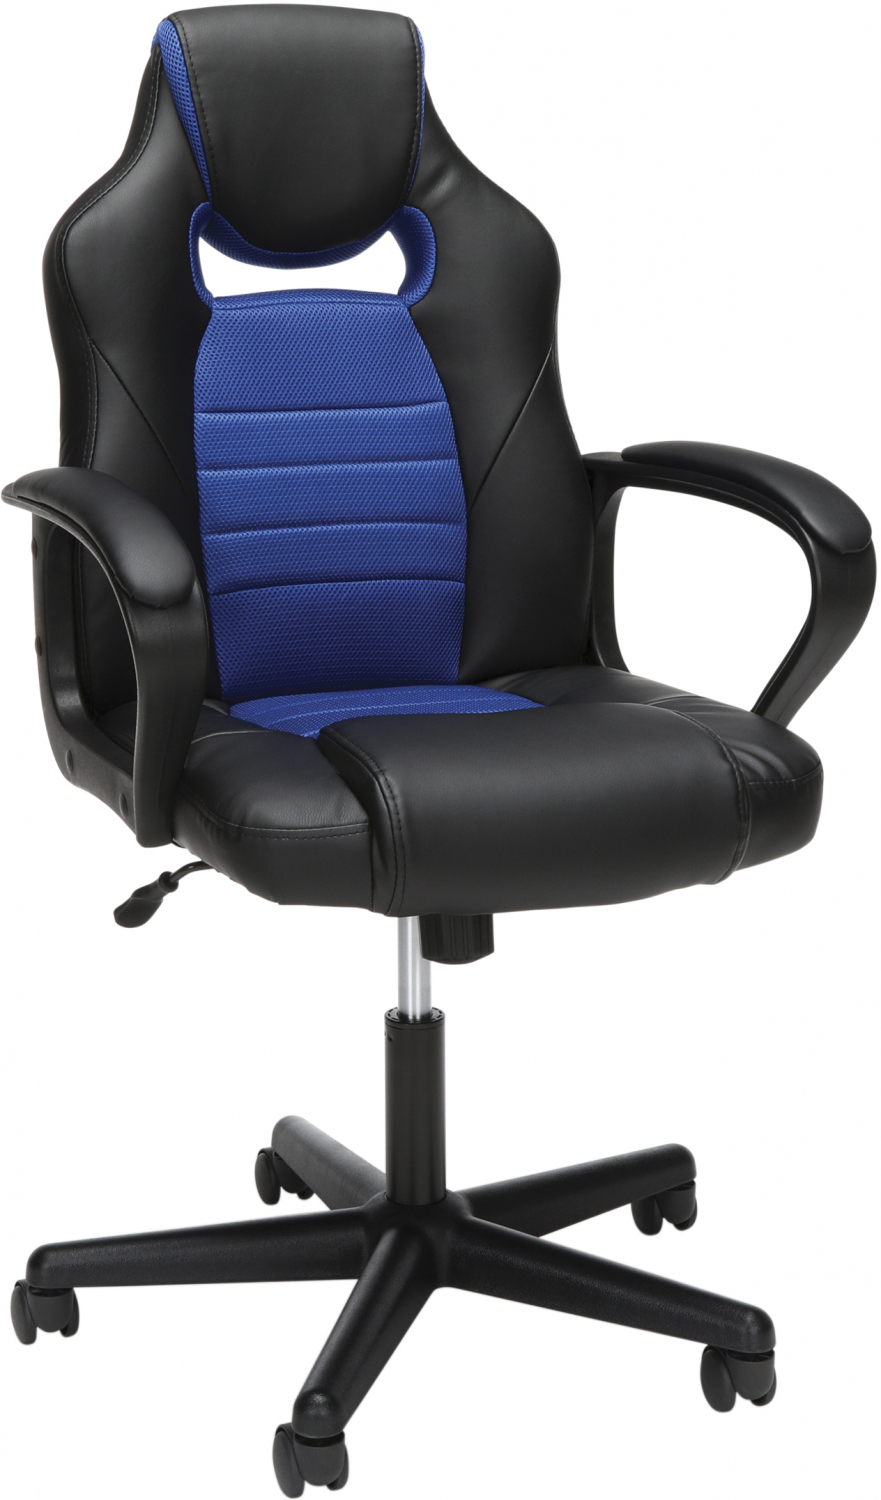 Fine Details About Essentials By Ofm Ess 3083 Racing Style Gaming Chair Multiple Colors Uwap Interior Chair Design Uwaporg